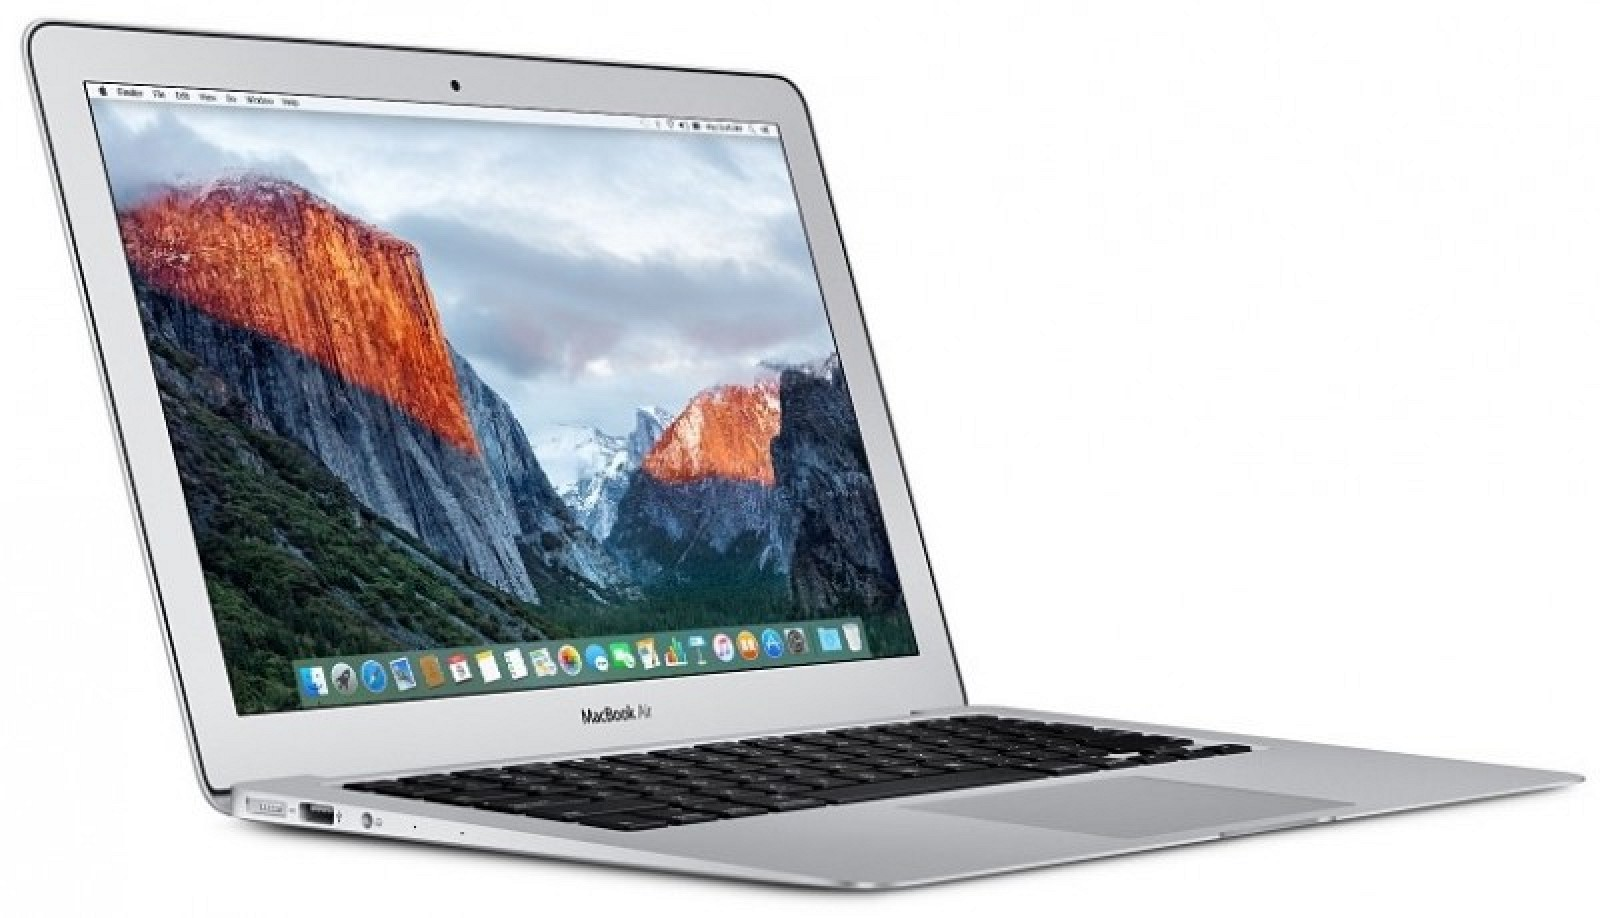 Apple Still Offering 2015 13-inch MacBook Air, 11-inch